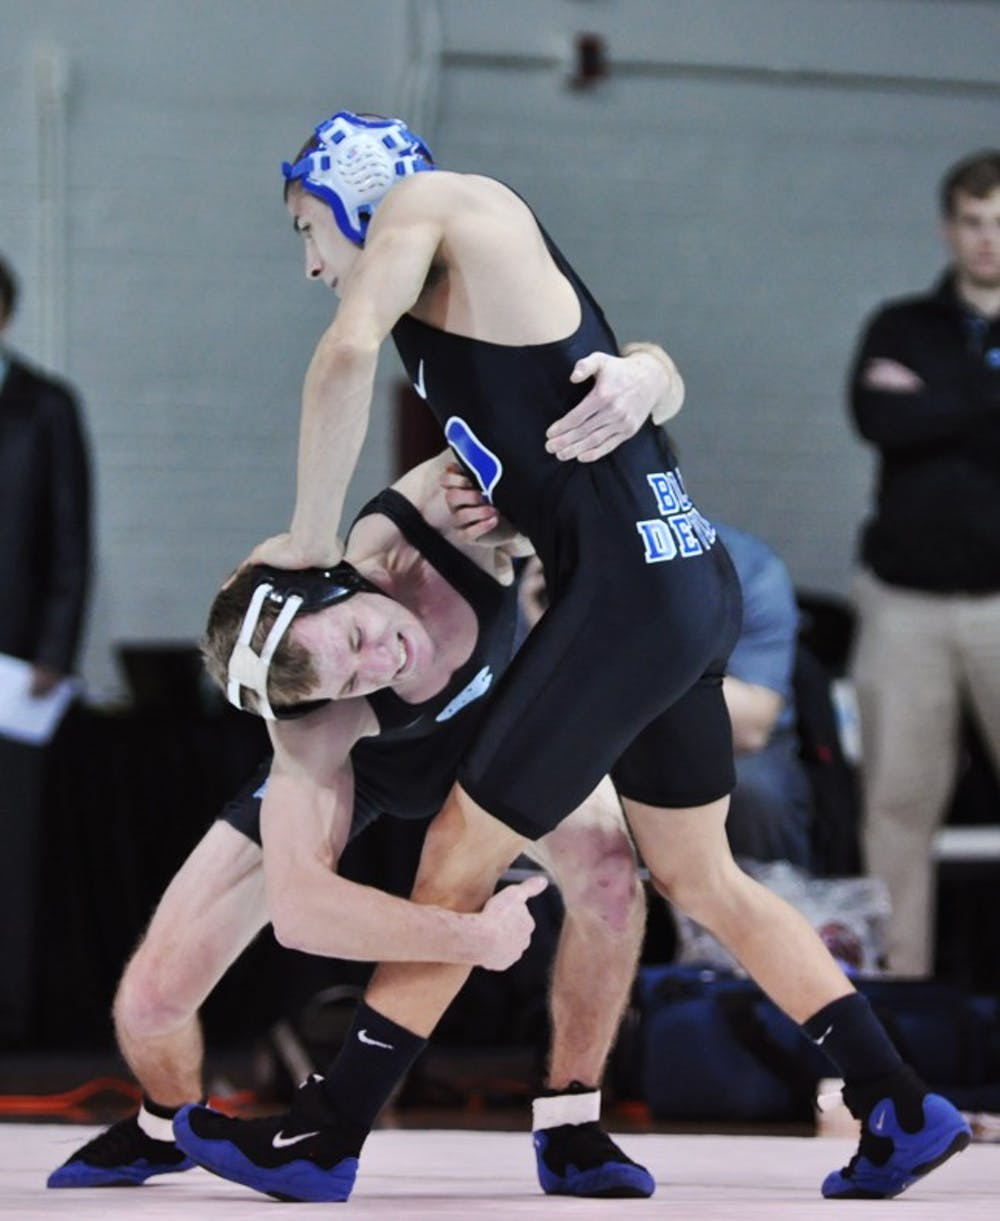 UNC wrestling meet defined by close matches